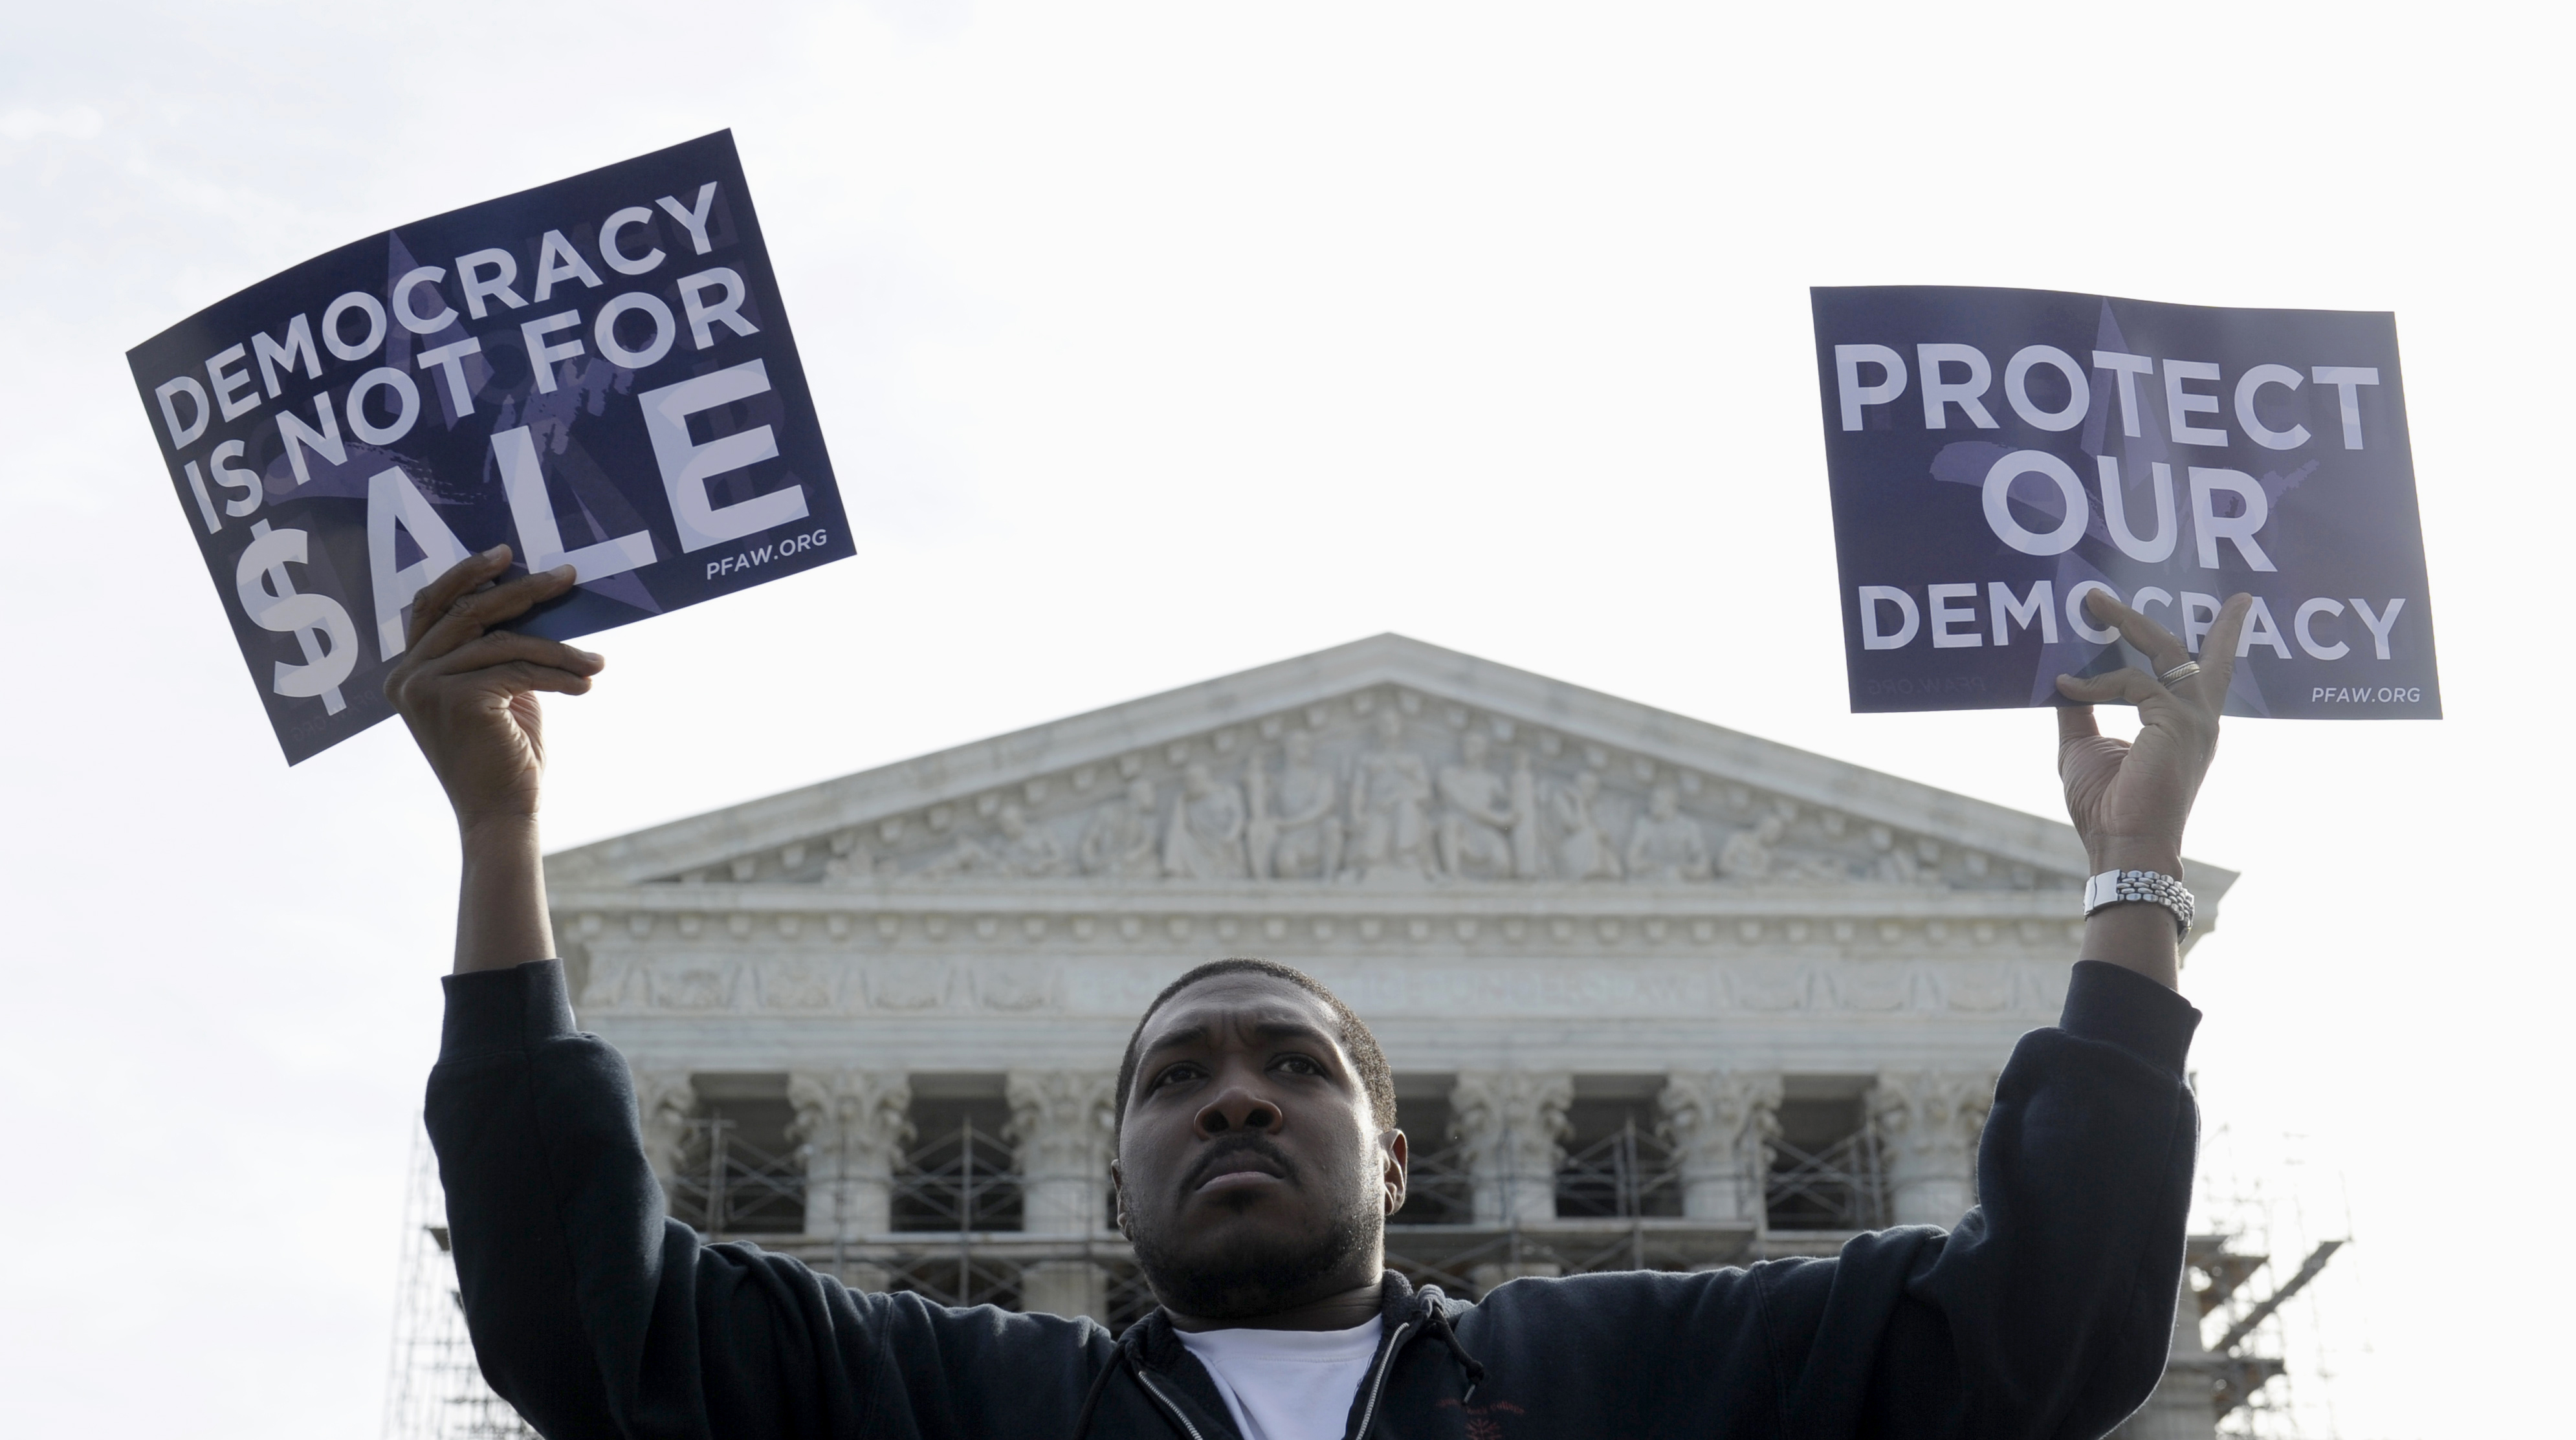 A demonstrator takes part in a rally outside the Supreme Court in Washington as the court heard arguments on campaign finance on Oct. 8, 2013. In a 5-4 vote Wednesday, the court struck down limits in federal law on the overall campaign contributions the biggest individual donors may make to candidates, political parties and political action committees. | AP